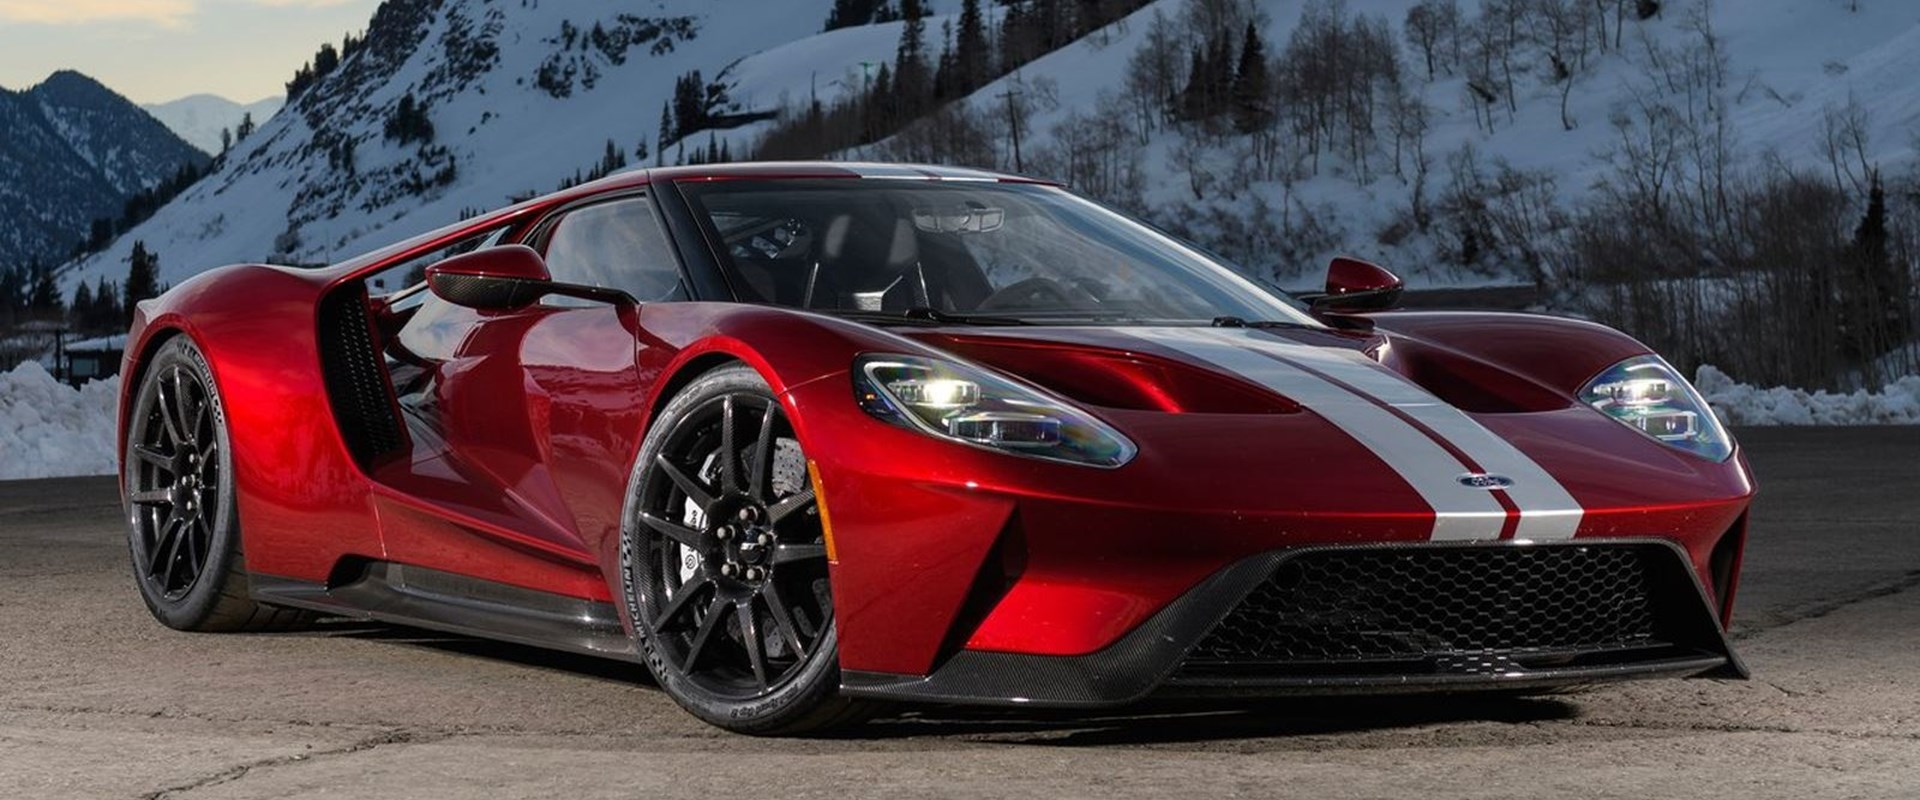 Ford ford gt car : Watch The Ford GT Prove It's One Of The Greatest Cars Ever Made ...